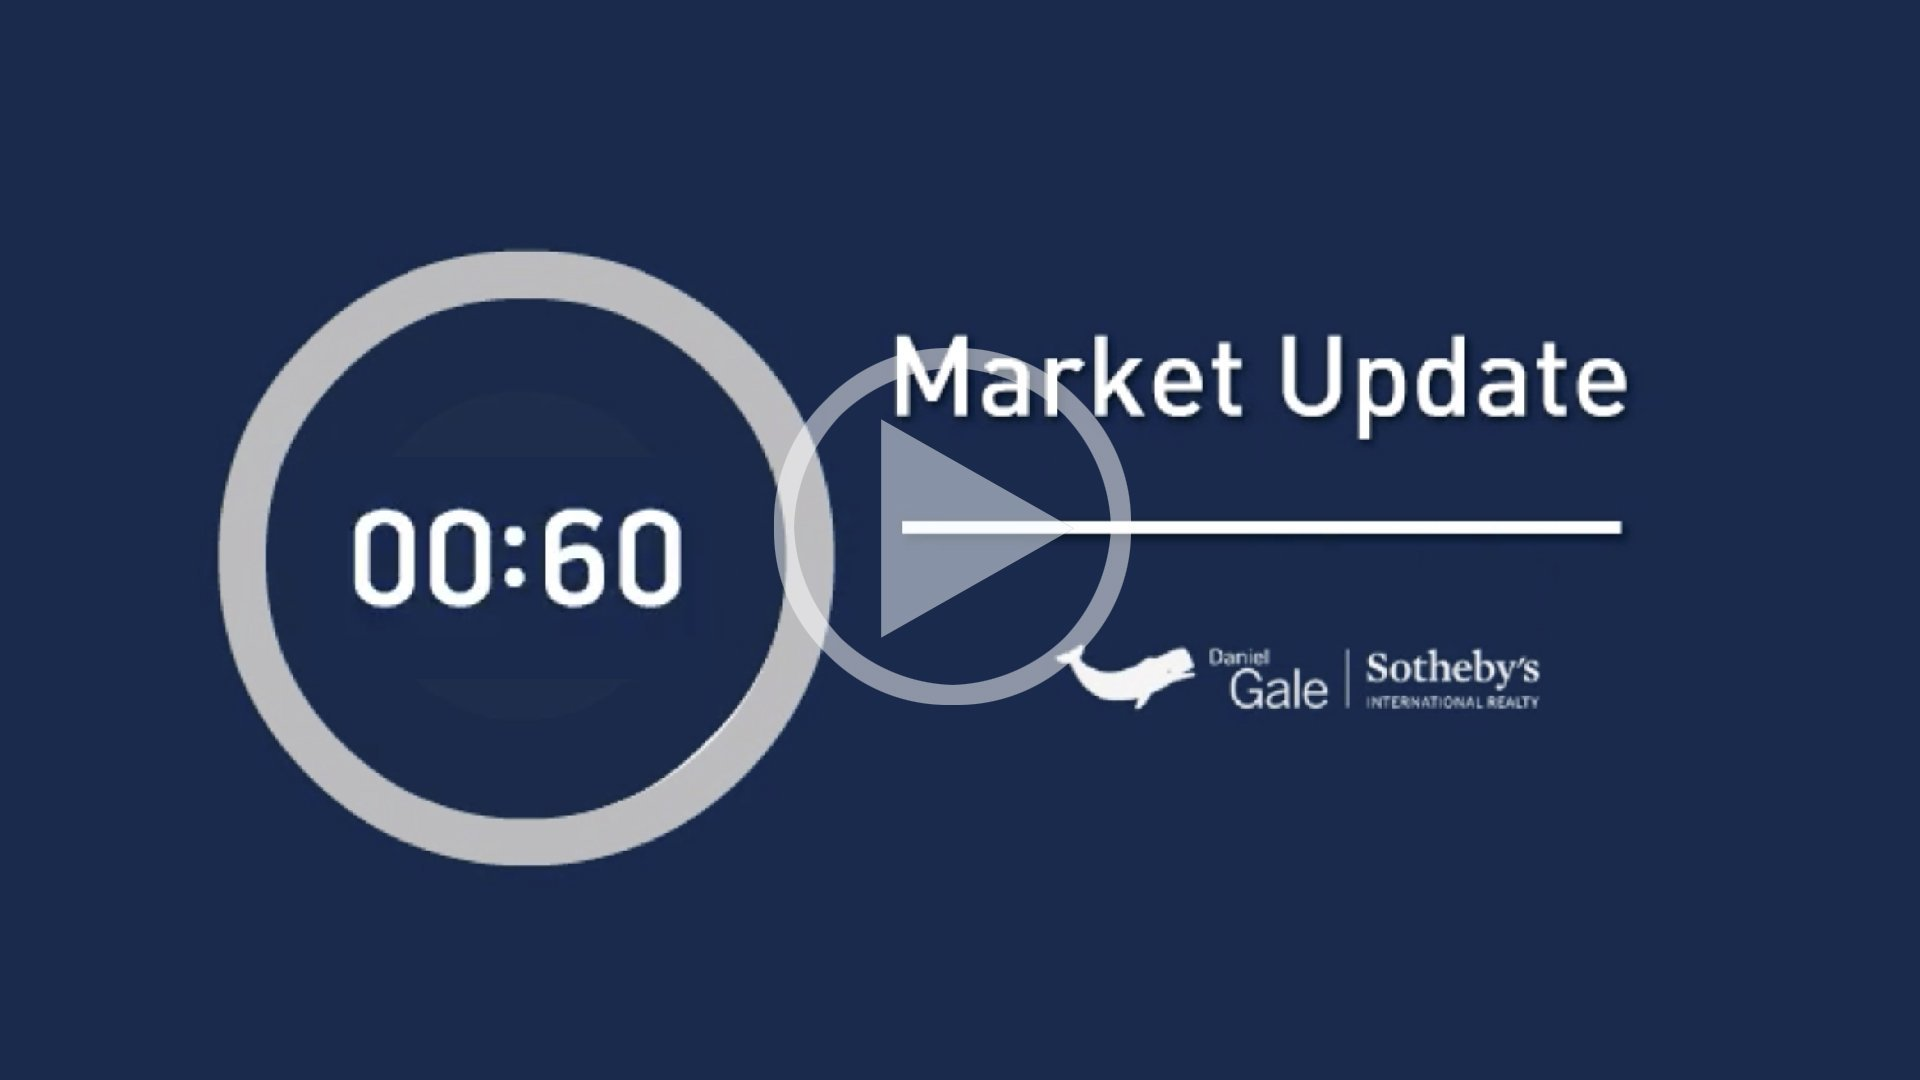 FORT SALONGA Market Report